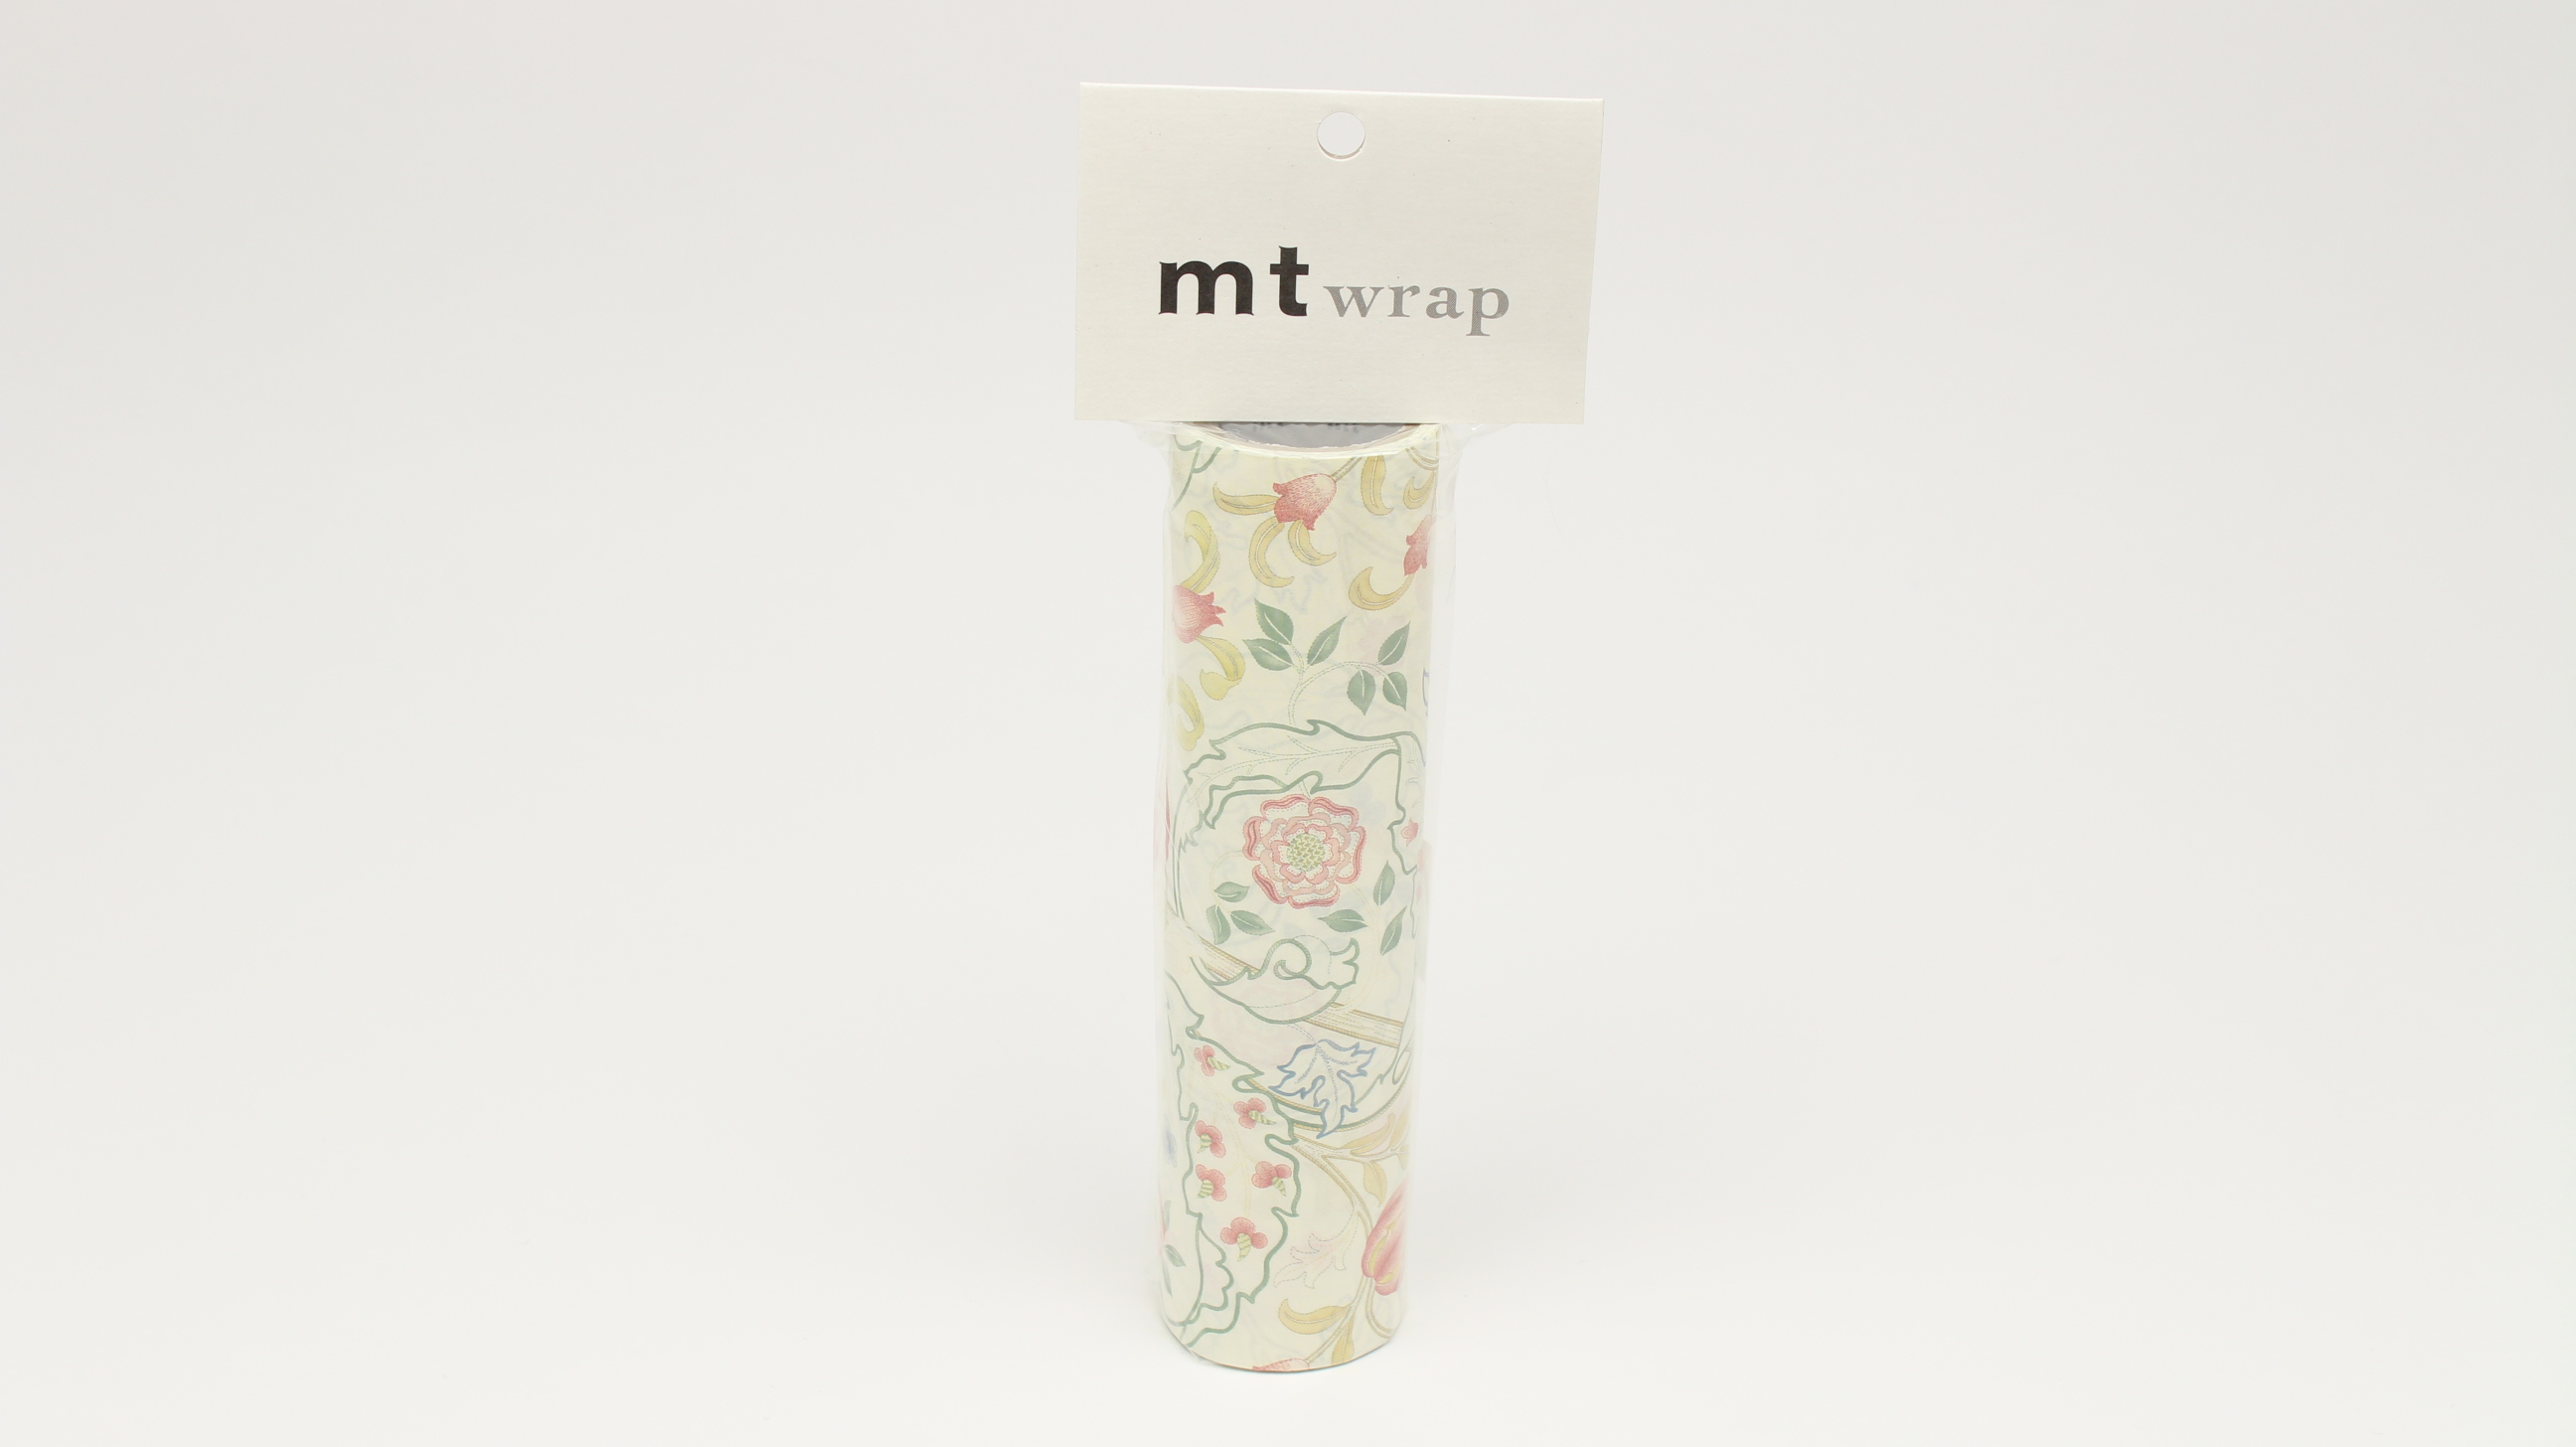 mt wrap S 詰替 William Morris Isobel